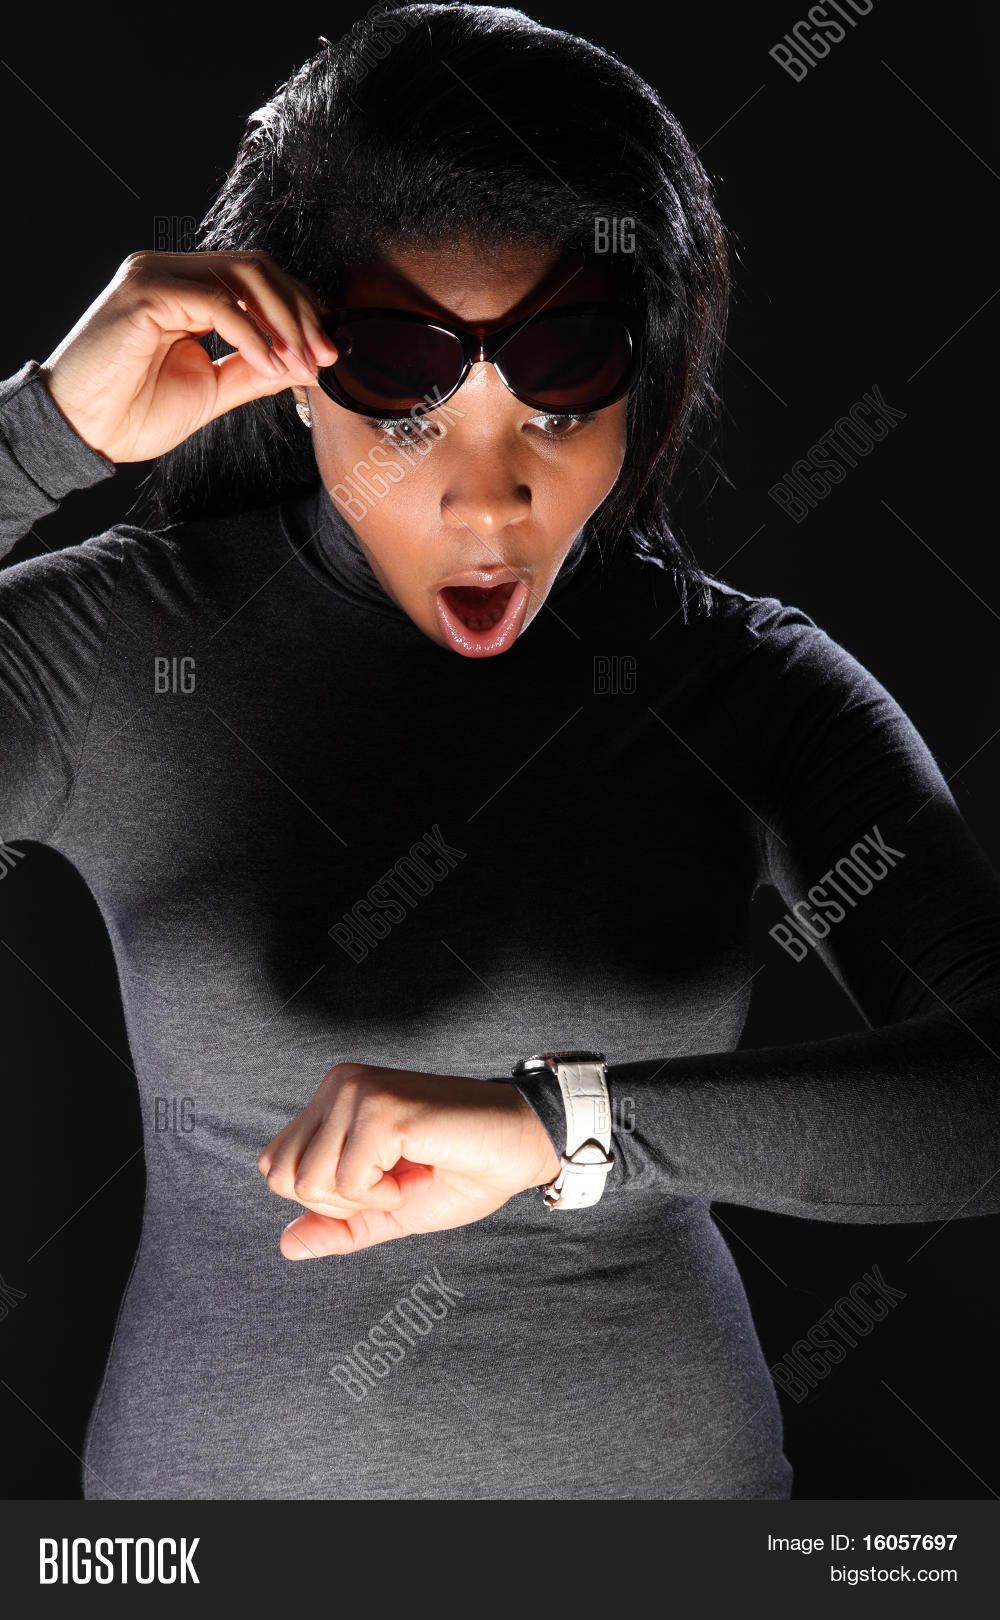 african,african woman,american,background,beautiful,black,brown,charcoal,ethnic,expression,female,girl,grey,hair,indoor,lady,late,latino,long,long hair,mixed,model,neck,person,polo,portrait,pretty,race,sexy,shades,shirt,shocked,skin,sleeve,straight,studio,sunglasses,surprised,tee,time,watch,woman,young